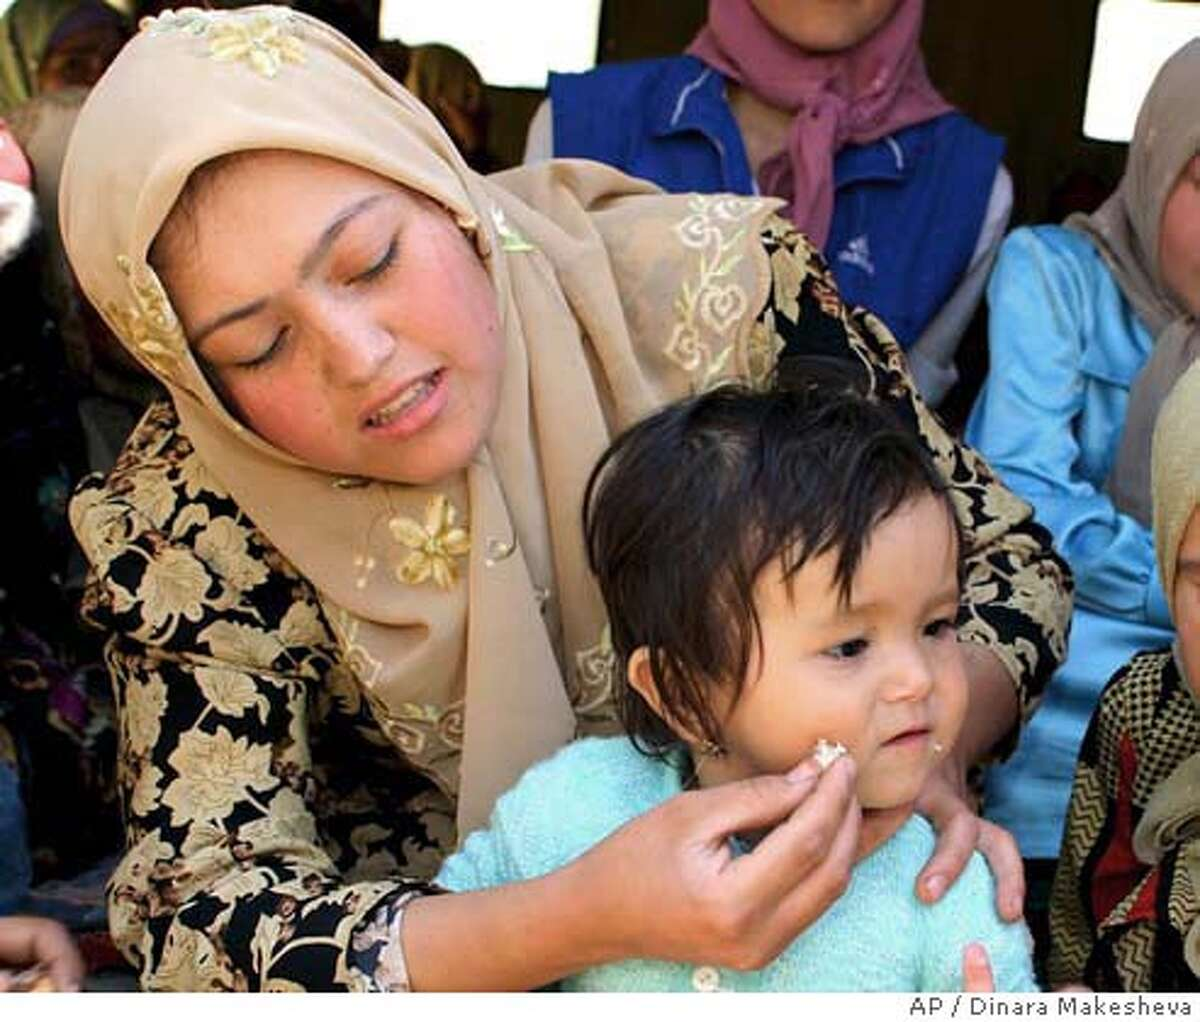 An Uzbek woman from Andijan, feeds her child at a refugee camp near Jalal-Abad region, some 600 kilometers (370 miles) south of the capital Bishkek, at the border with Uzbekistan, Monday, May 16, 2005. Kyrgyz authorities had to open a refugee camp at the border with Uzbekistan after hundreds of people from Andijan region arrived escaping the armed clashes. (AP Photo/ Dinara Makesheva)